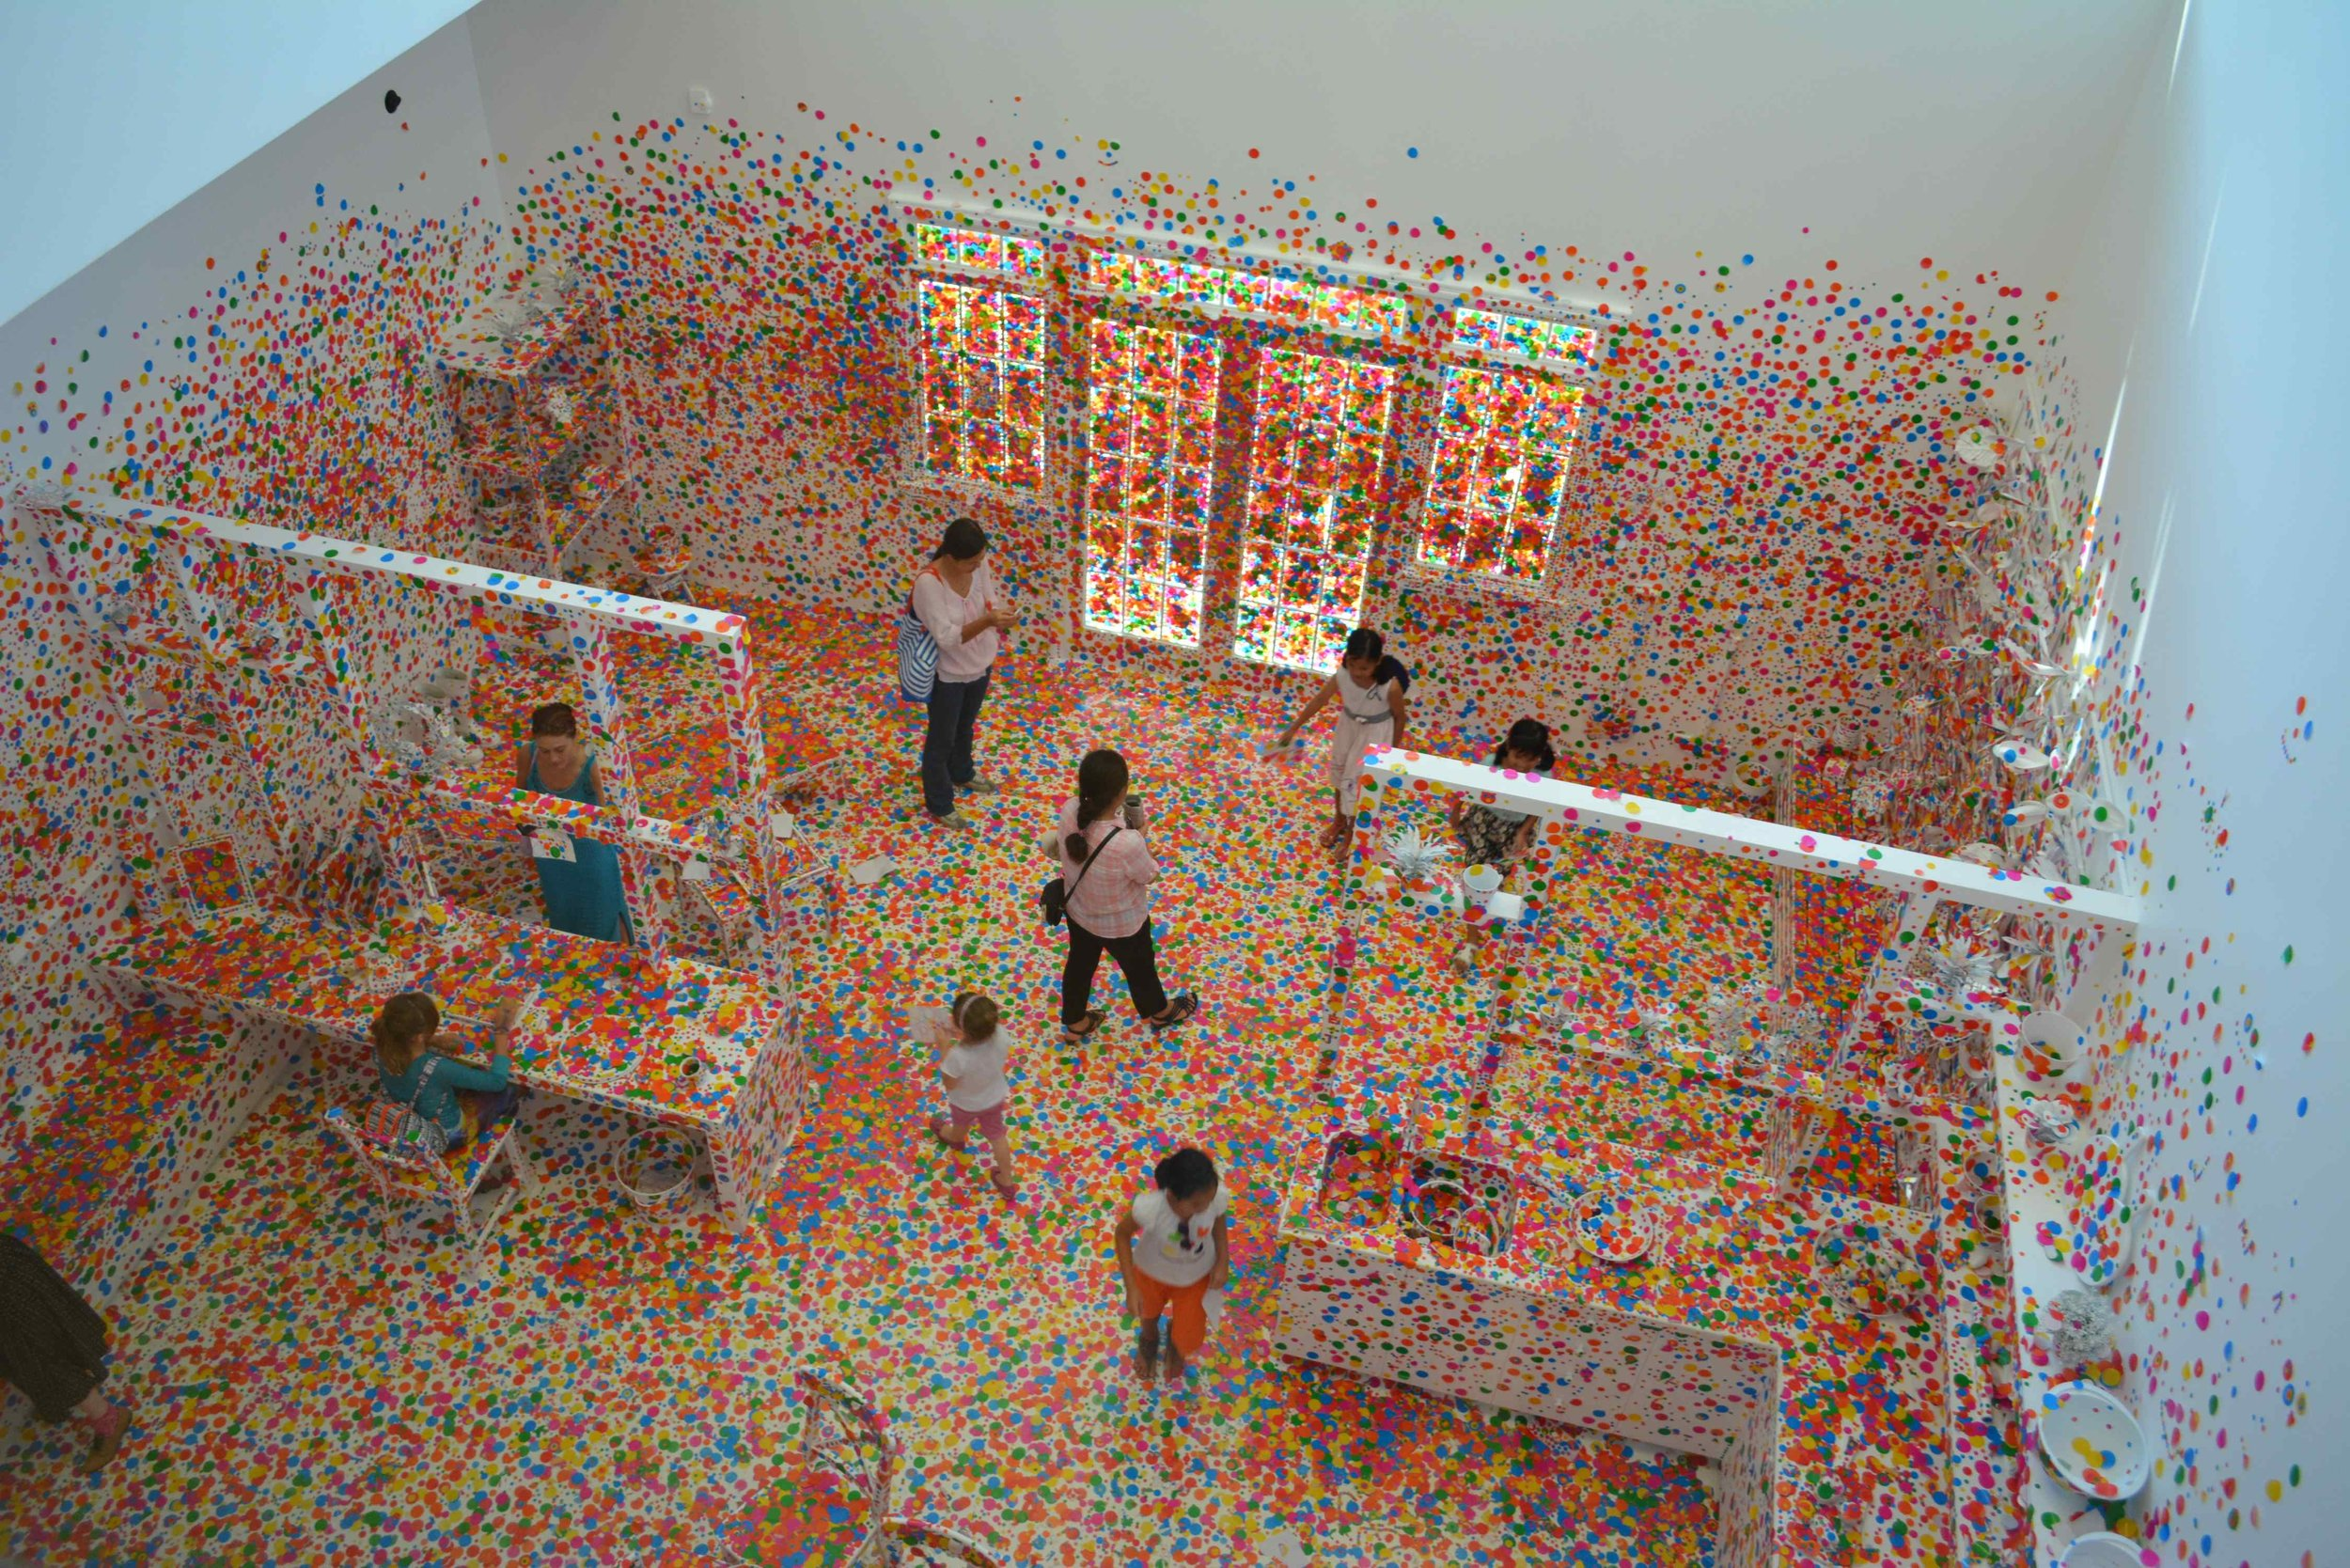 Pictured: Exhibition by Yayoi Kusama­ 'The Obliteration Room' at GOMA Brisbane